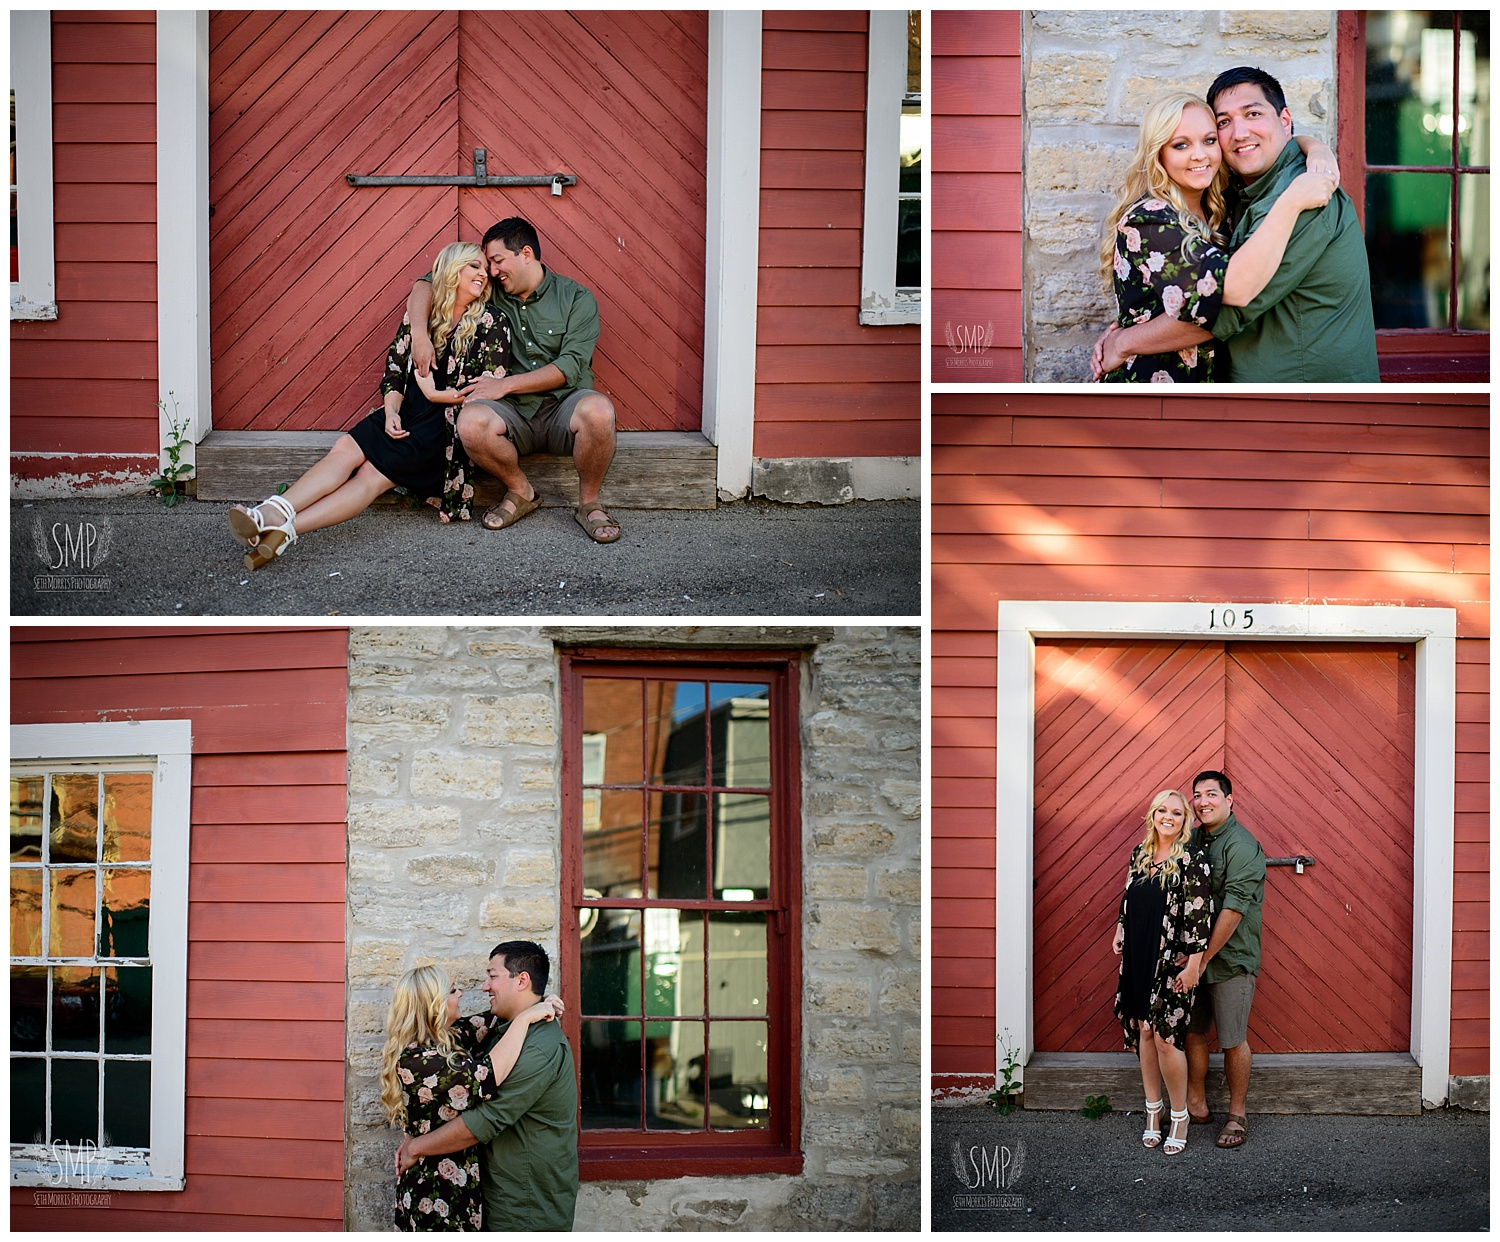 utica-engagement-photographer-downtown-pictures-2.jpg